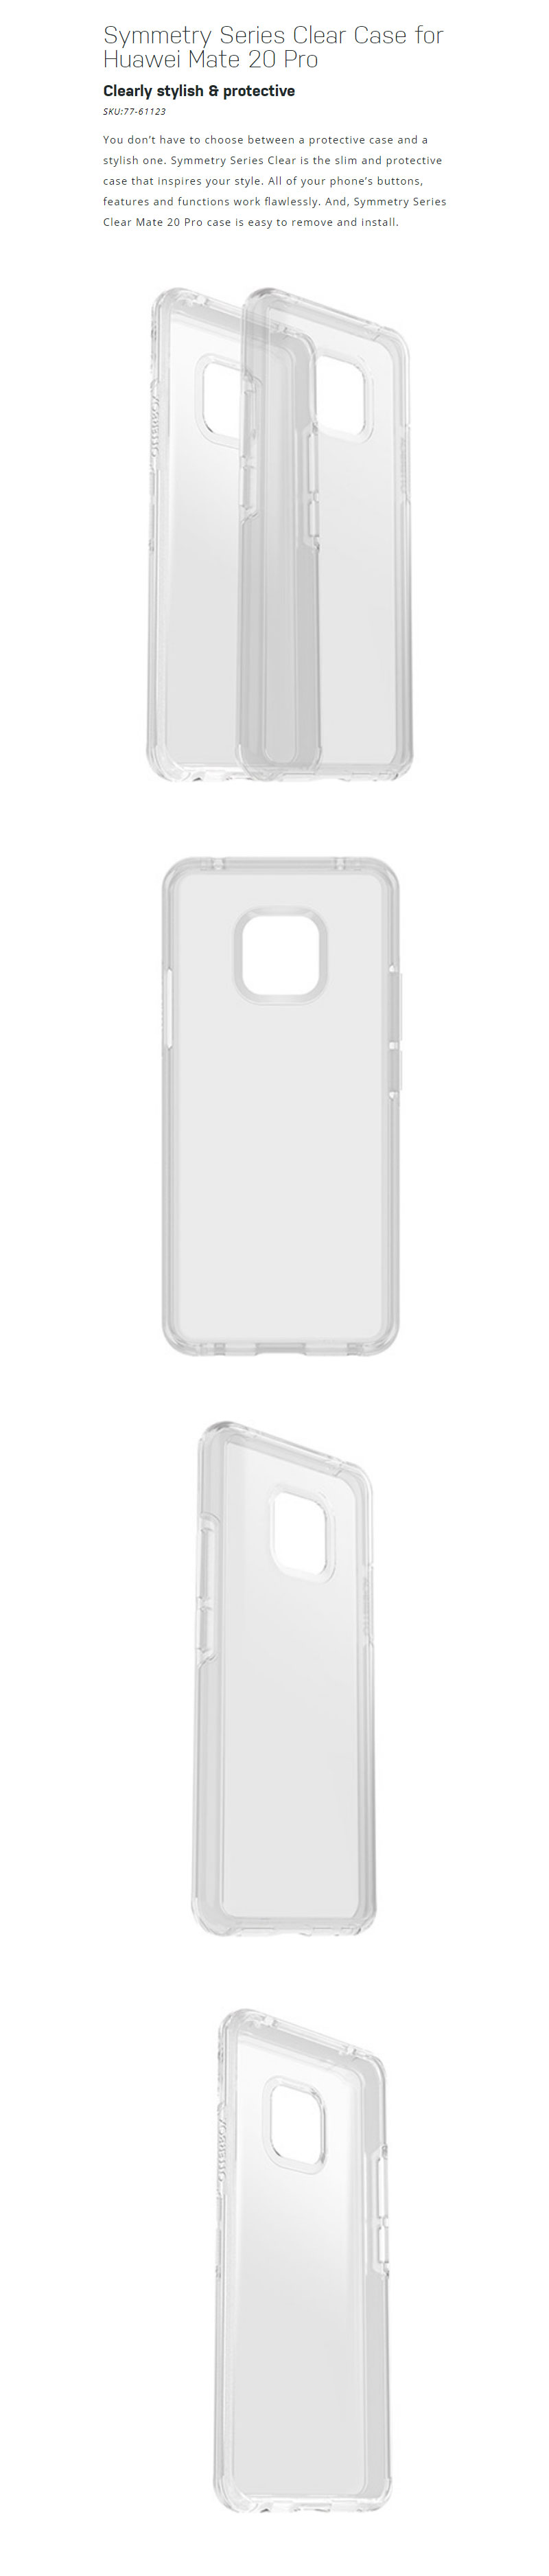 big sale 4a66c 0b281 Otterbox Symmetry Series Clear Case for Huawei Mate 20 Pro (Clear)